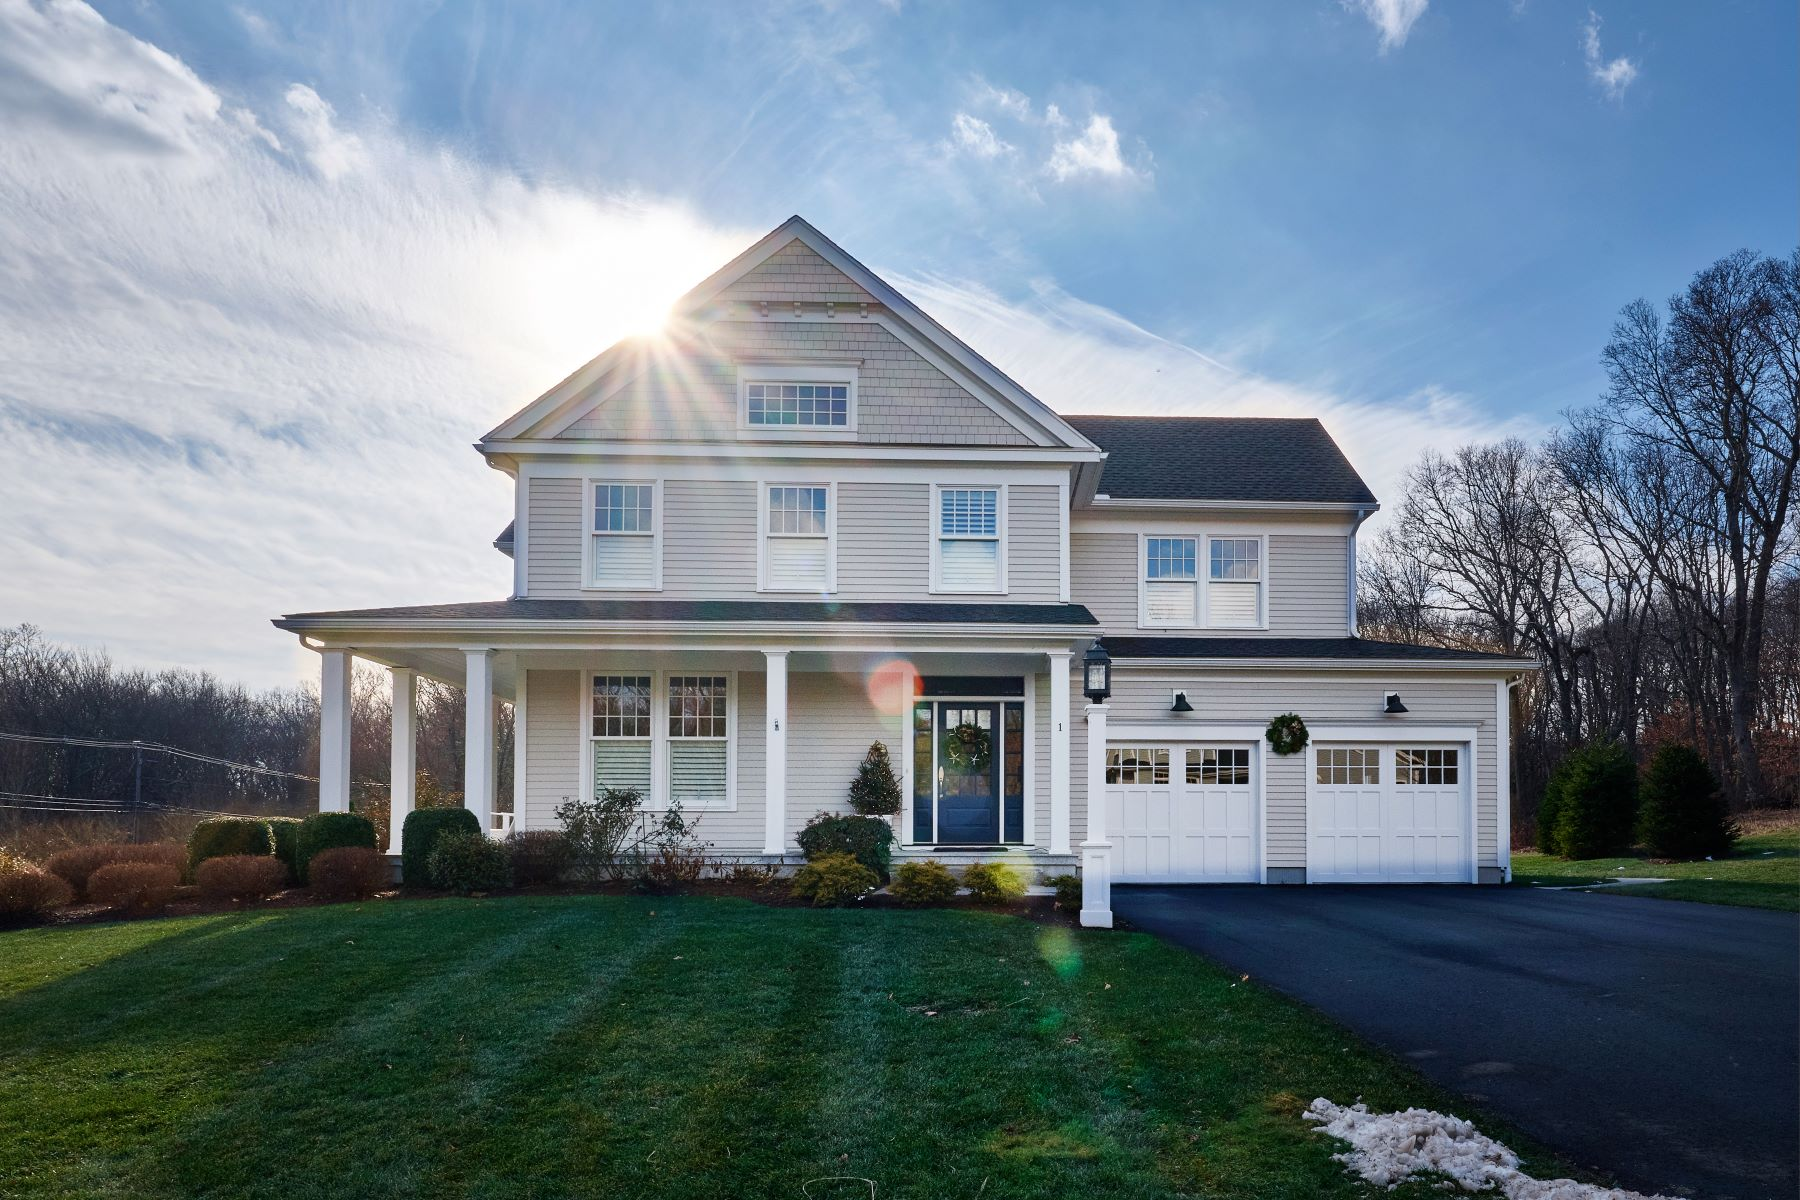 Condominium for Sale at Benton's Knoll in Sachem's Head 17 Benton's Knoll Guilford, Connecticut 06437 United States